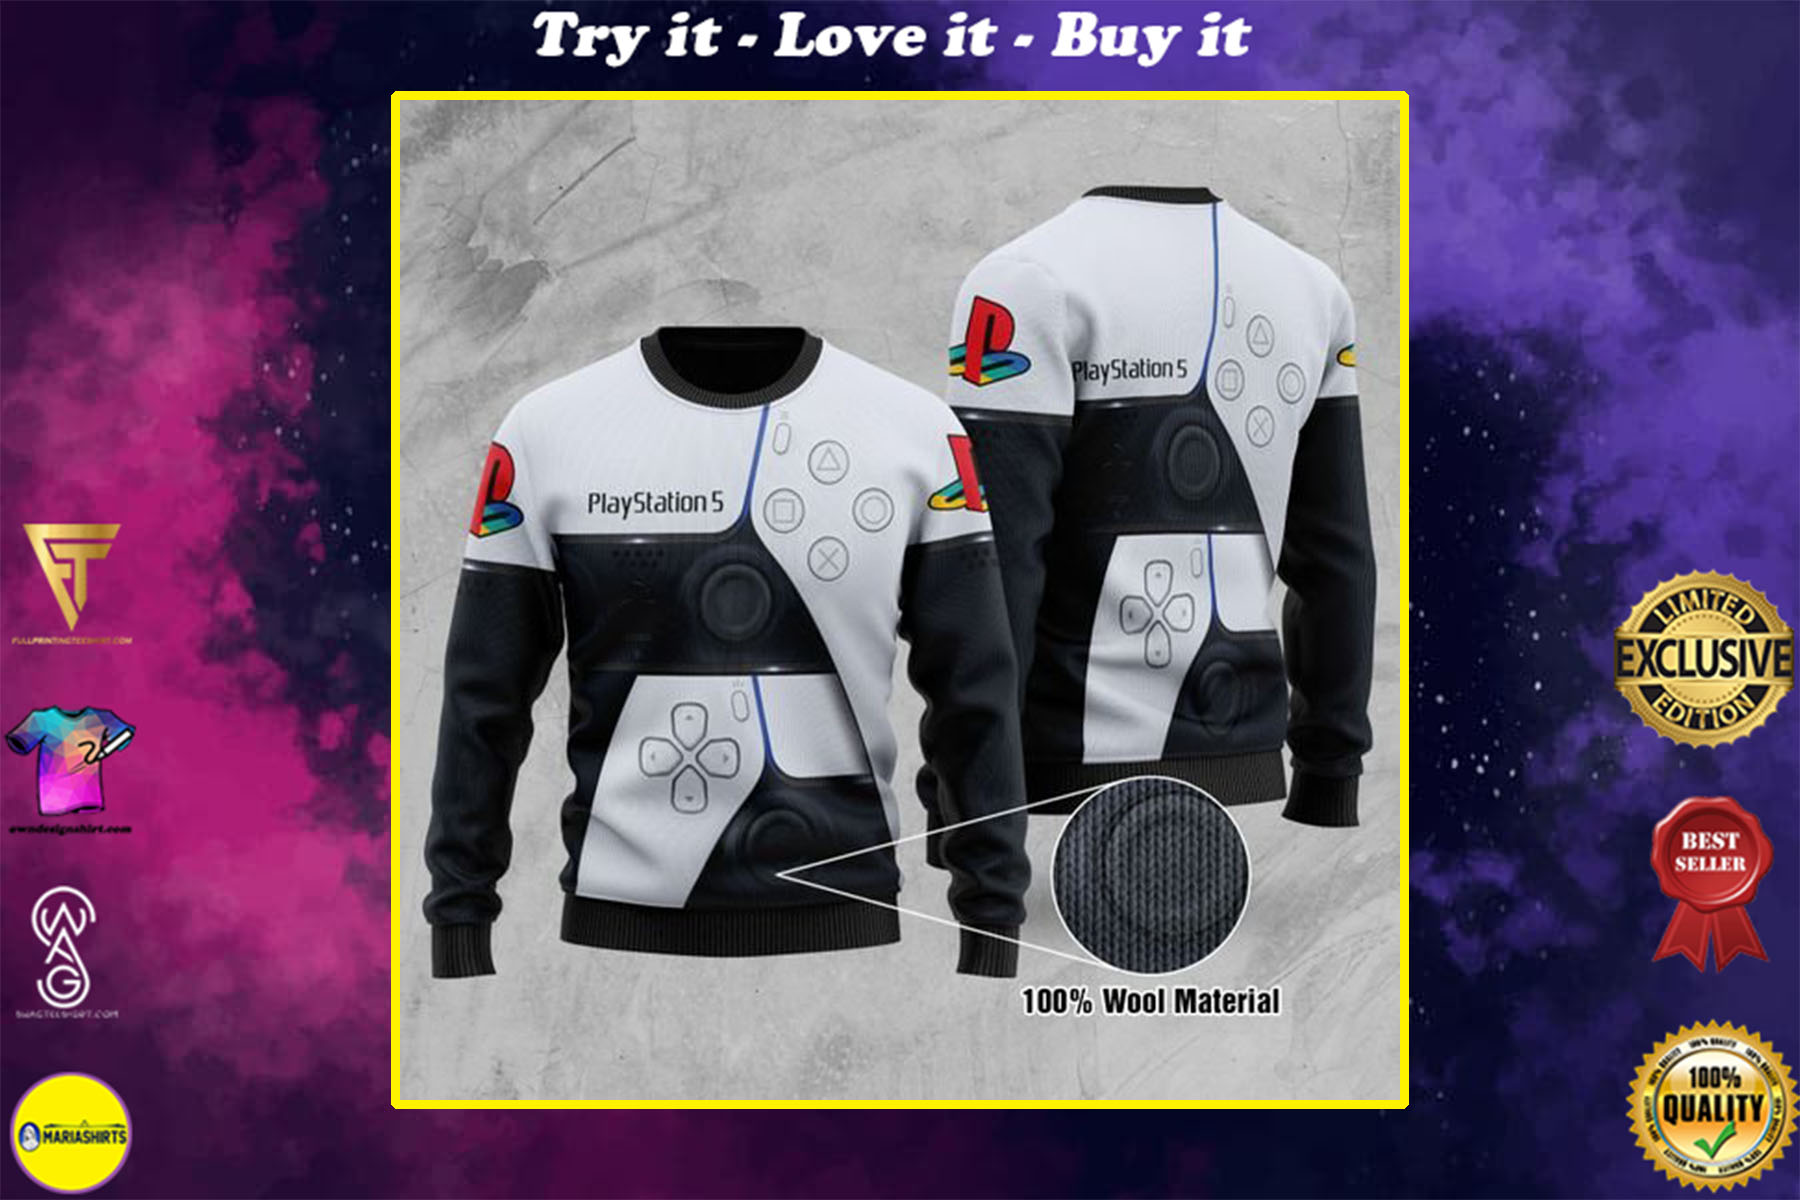 [special edition] game play station 5 all over printed ugly christmas sweater - maria